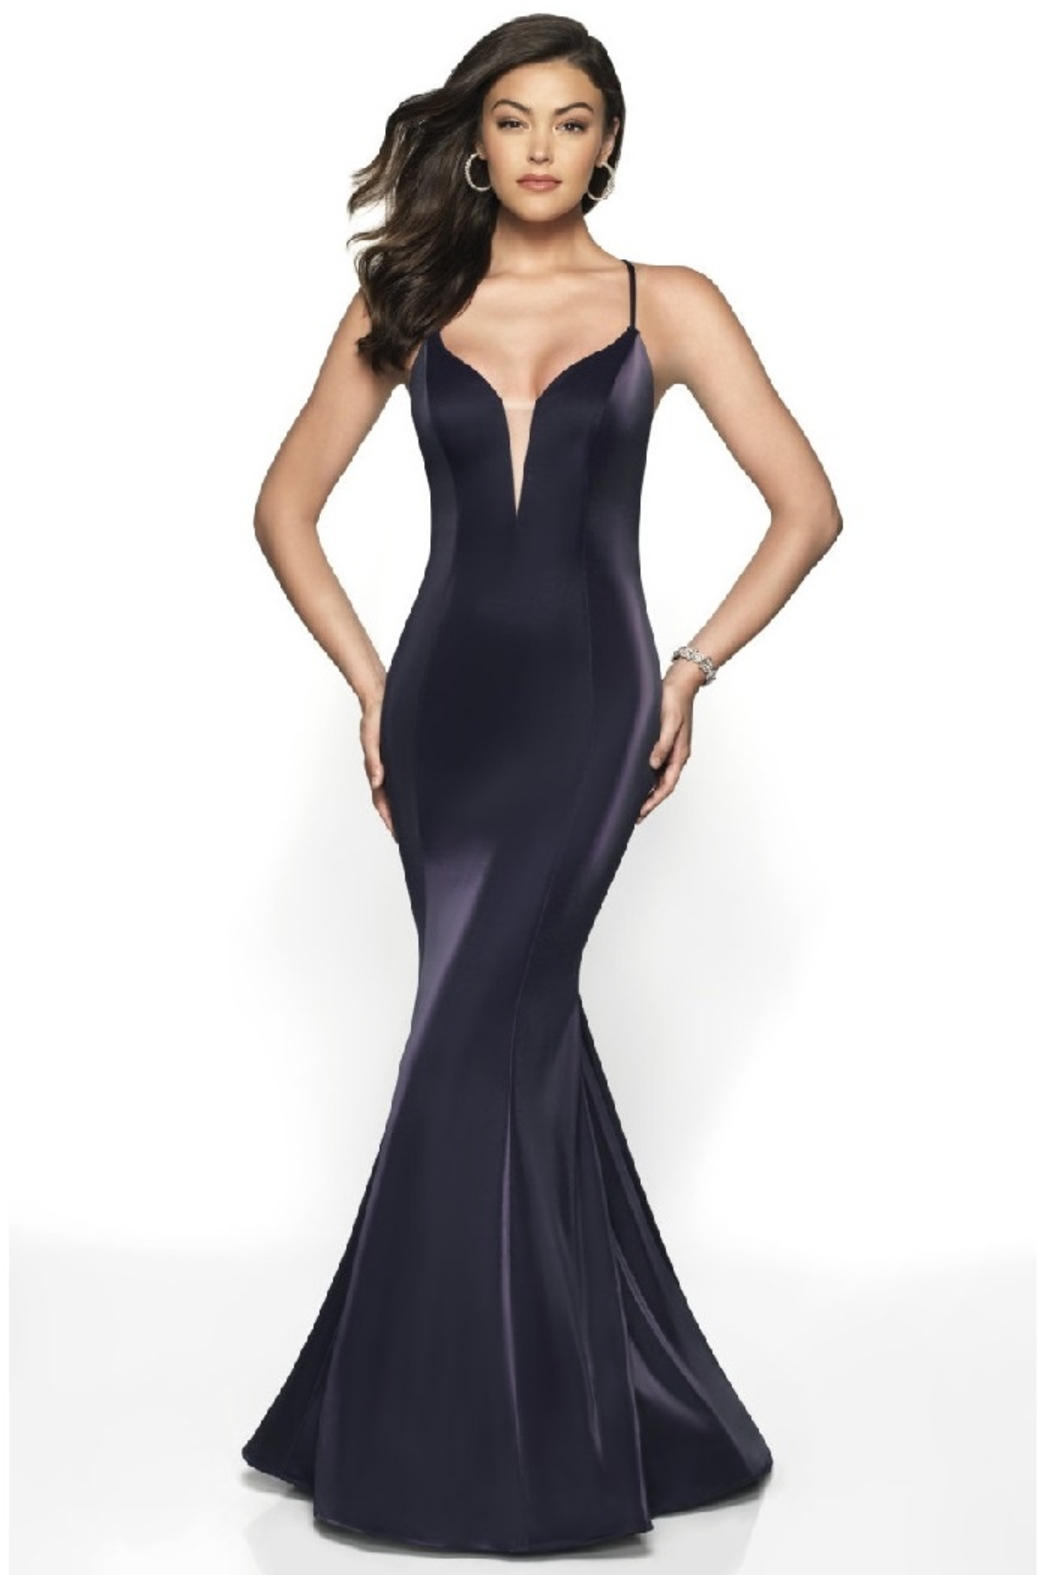 Flair New York Navy Metallic Fit & Flare Long Formal Dress - Main Image